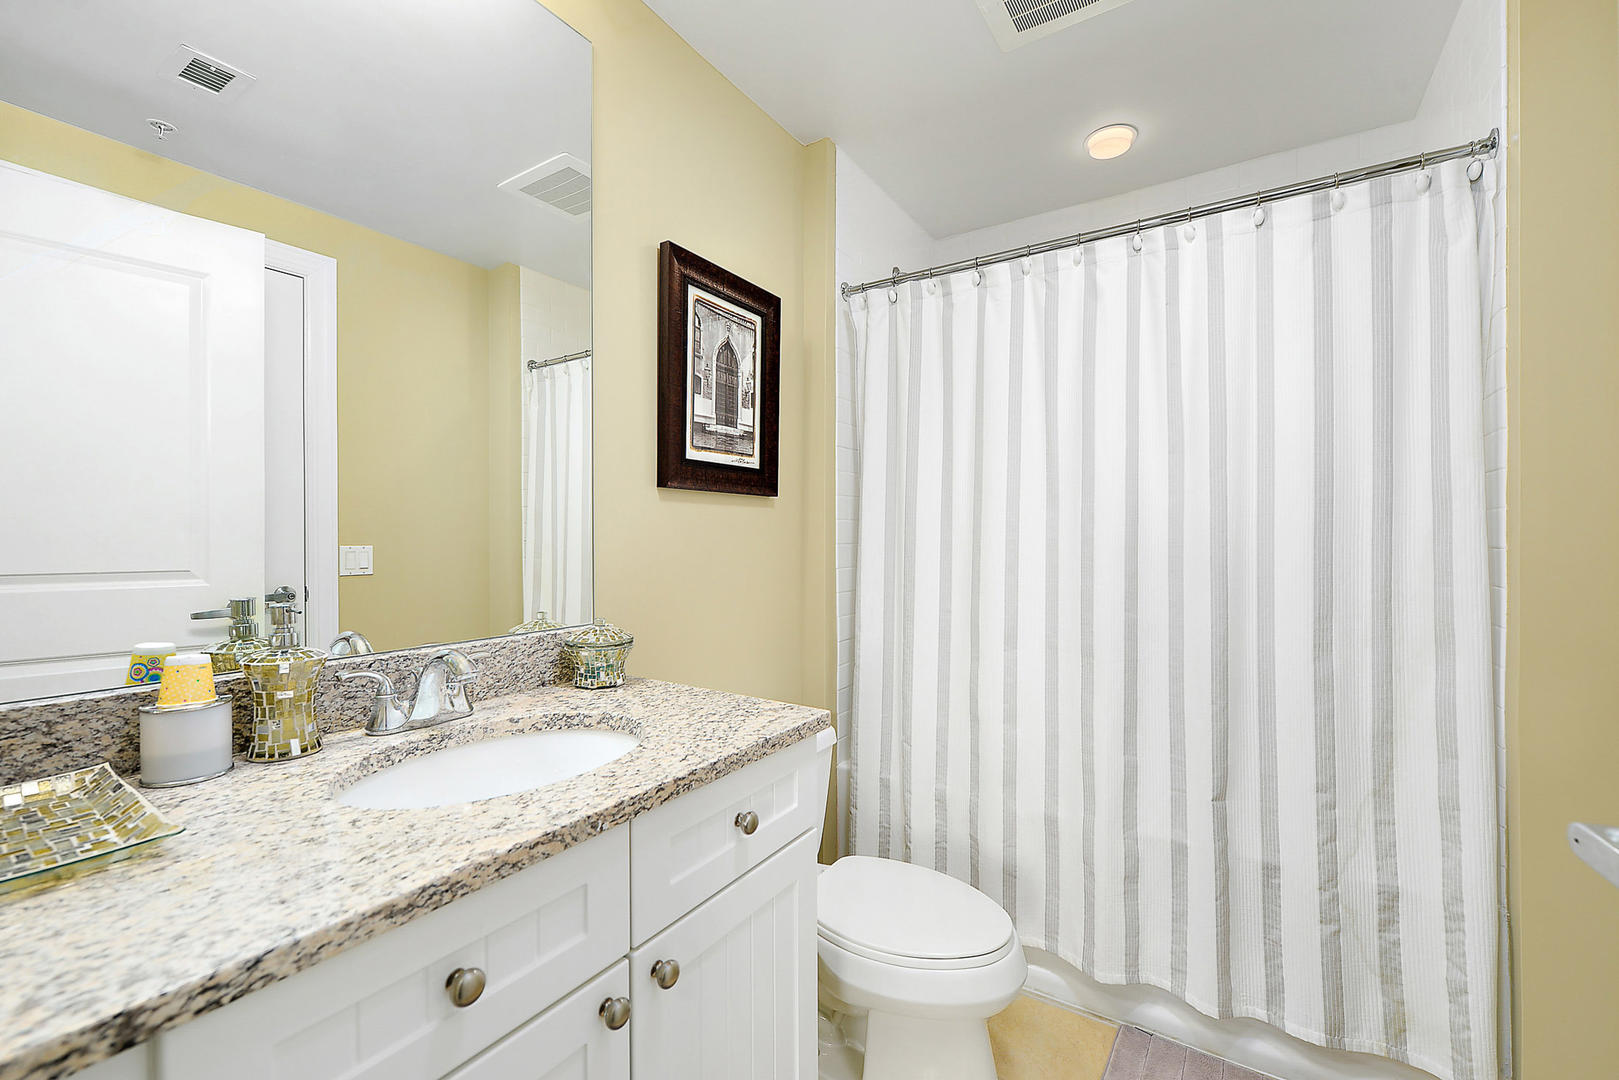 Gateway Grand 213 - Bathroom 2